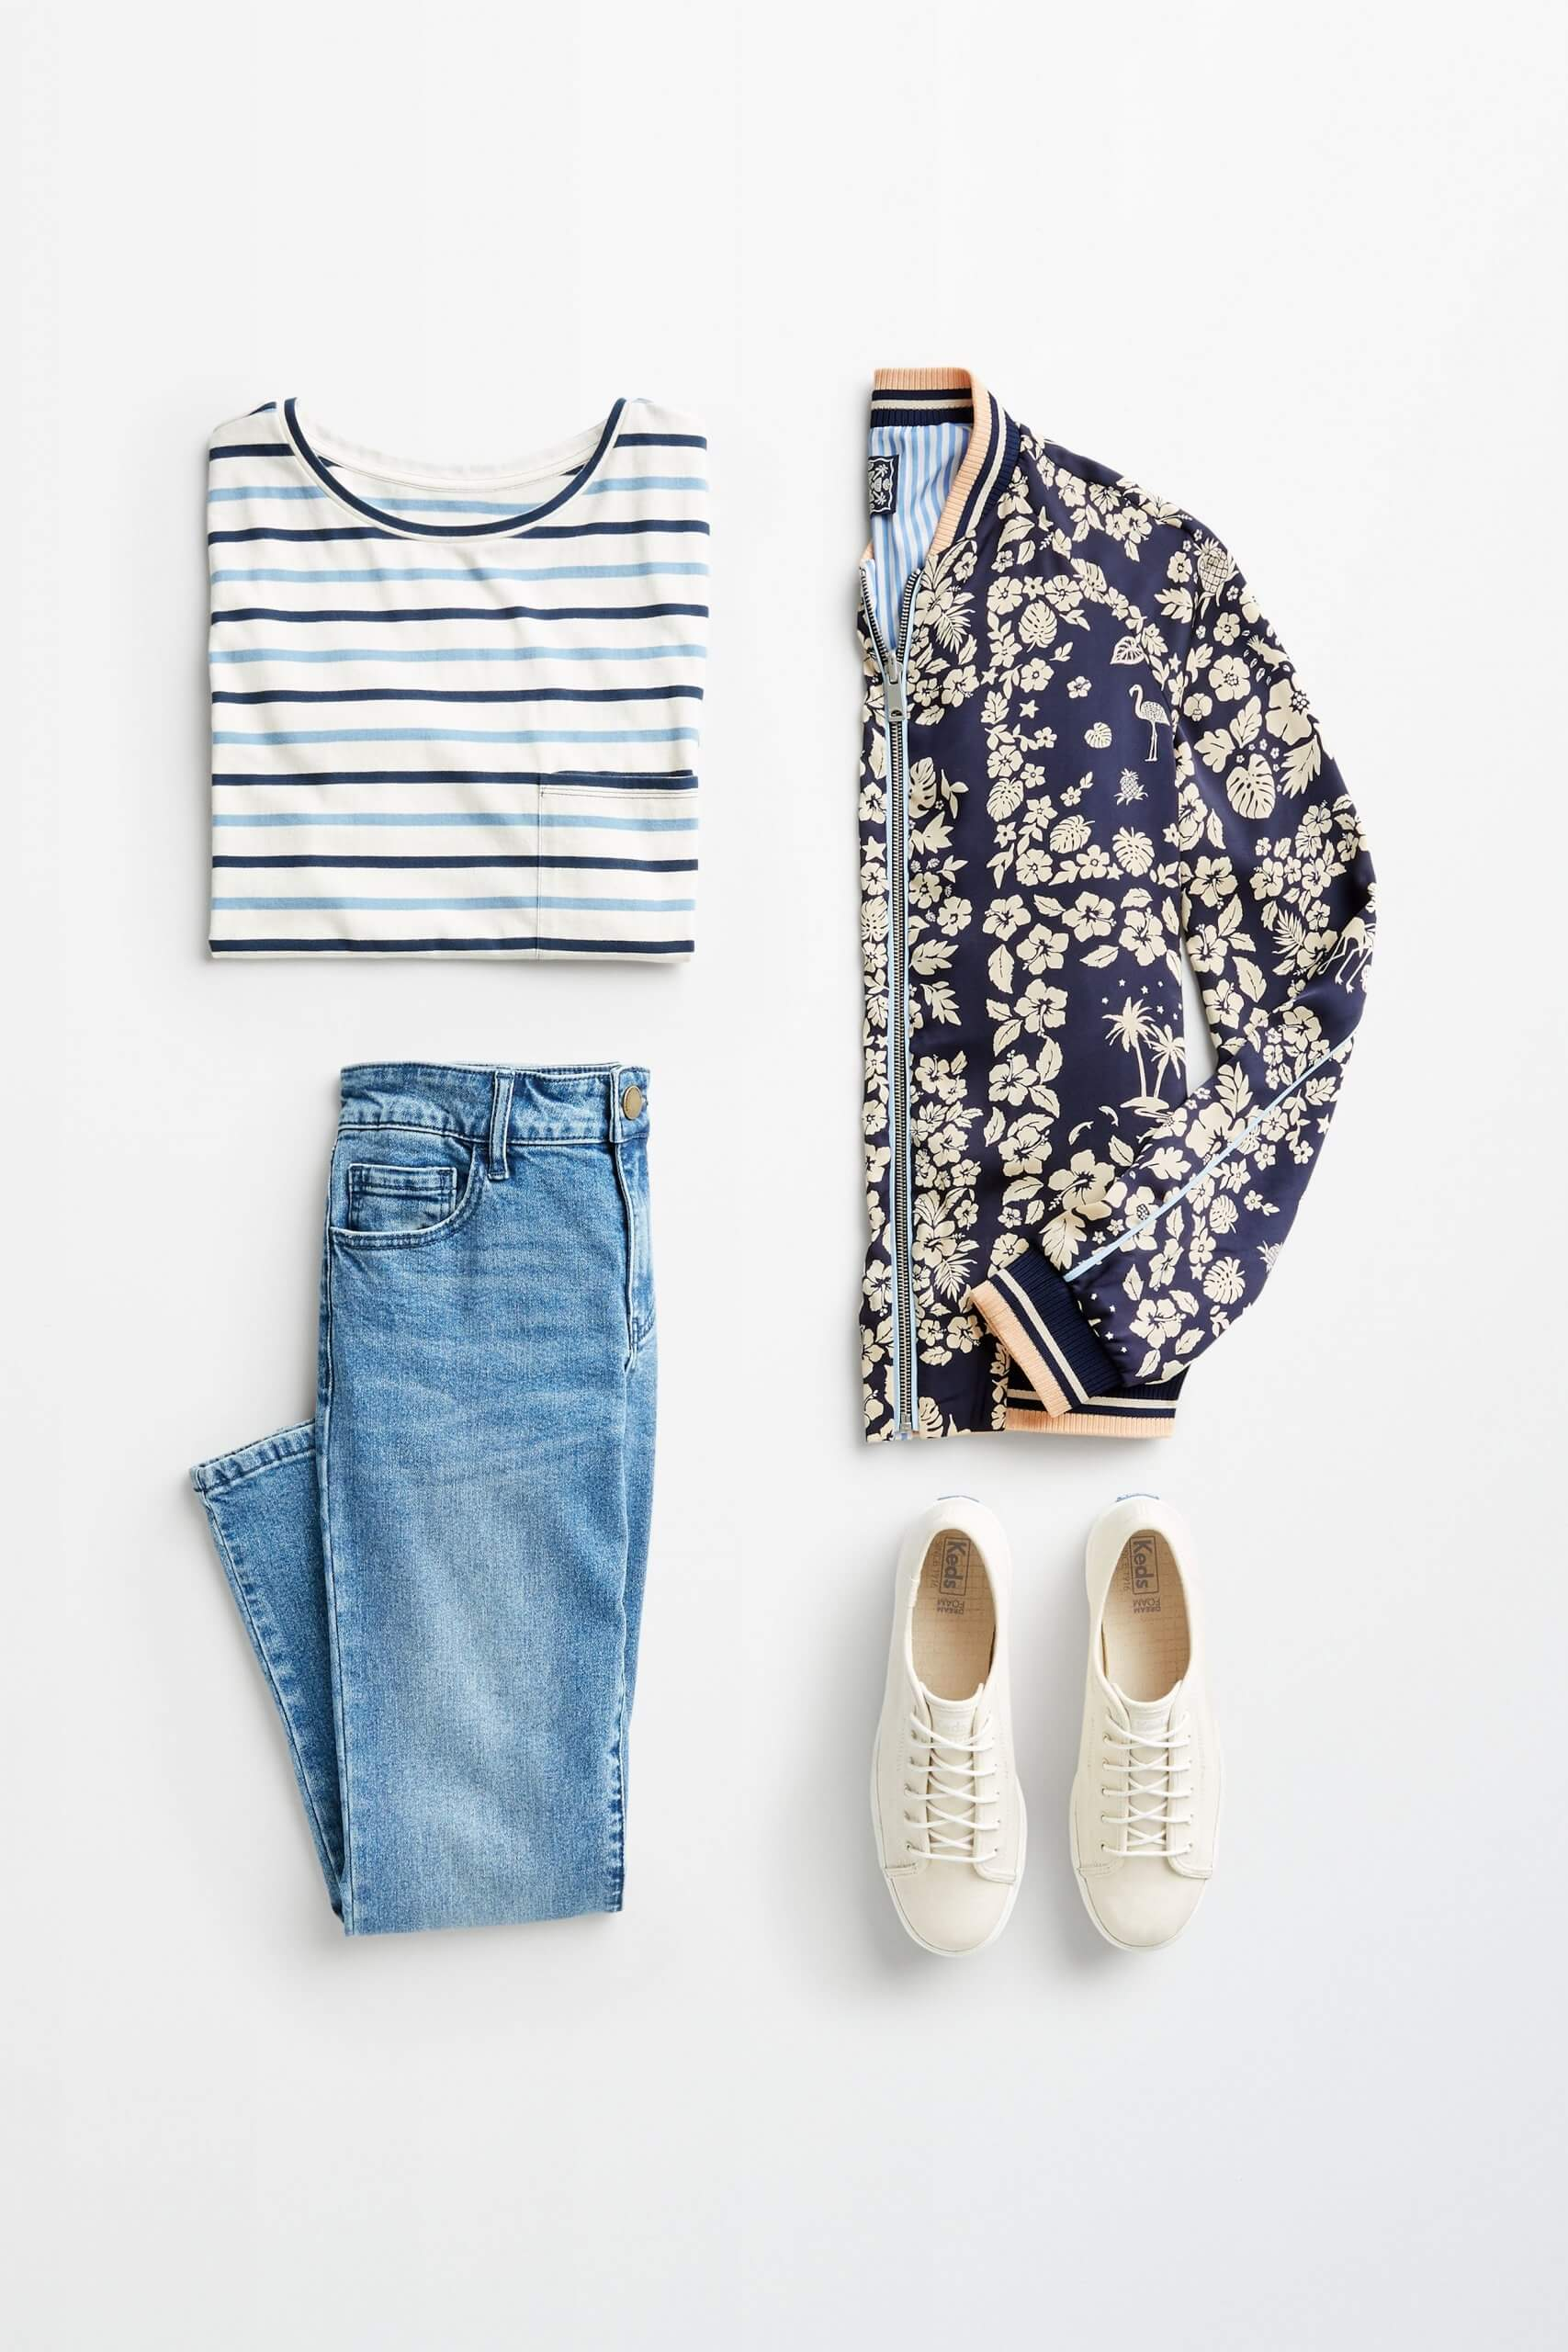 Stitch Fix women's outfit laydown showing how to mix prints and patterns featuring a striped t-shirt, reversible bomber jacket, blue denim and off-white sneakers.